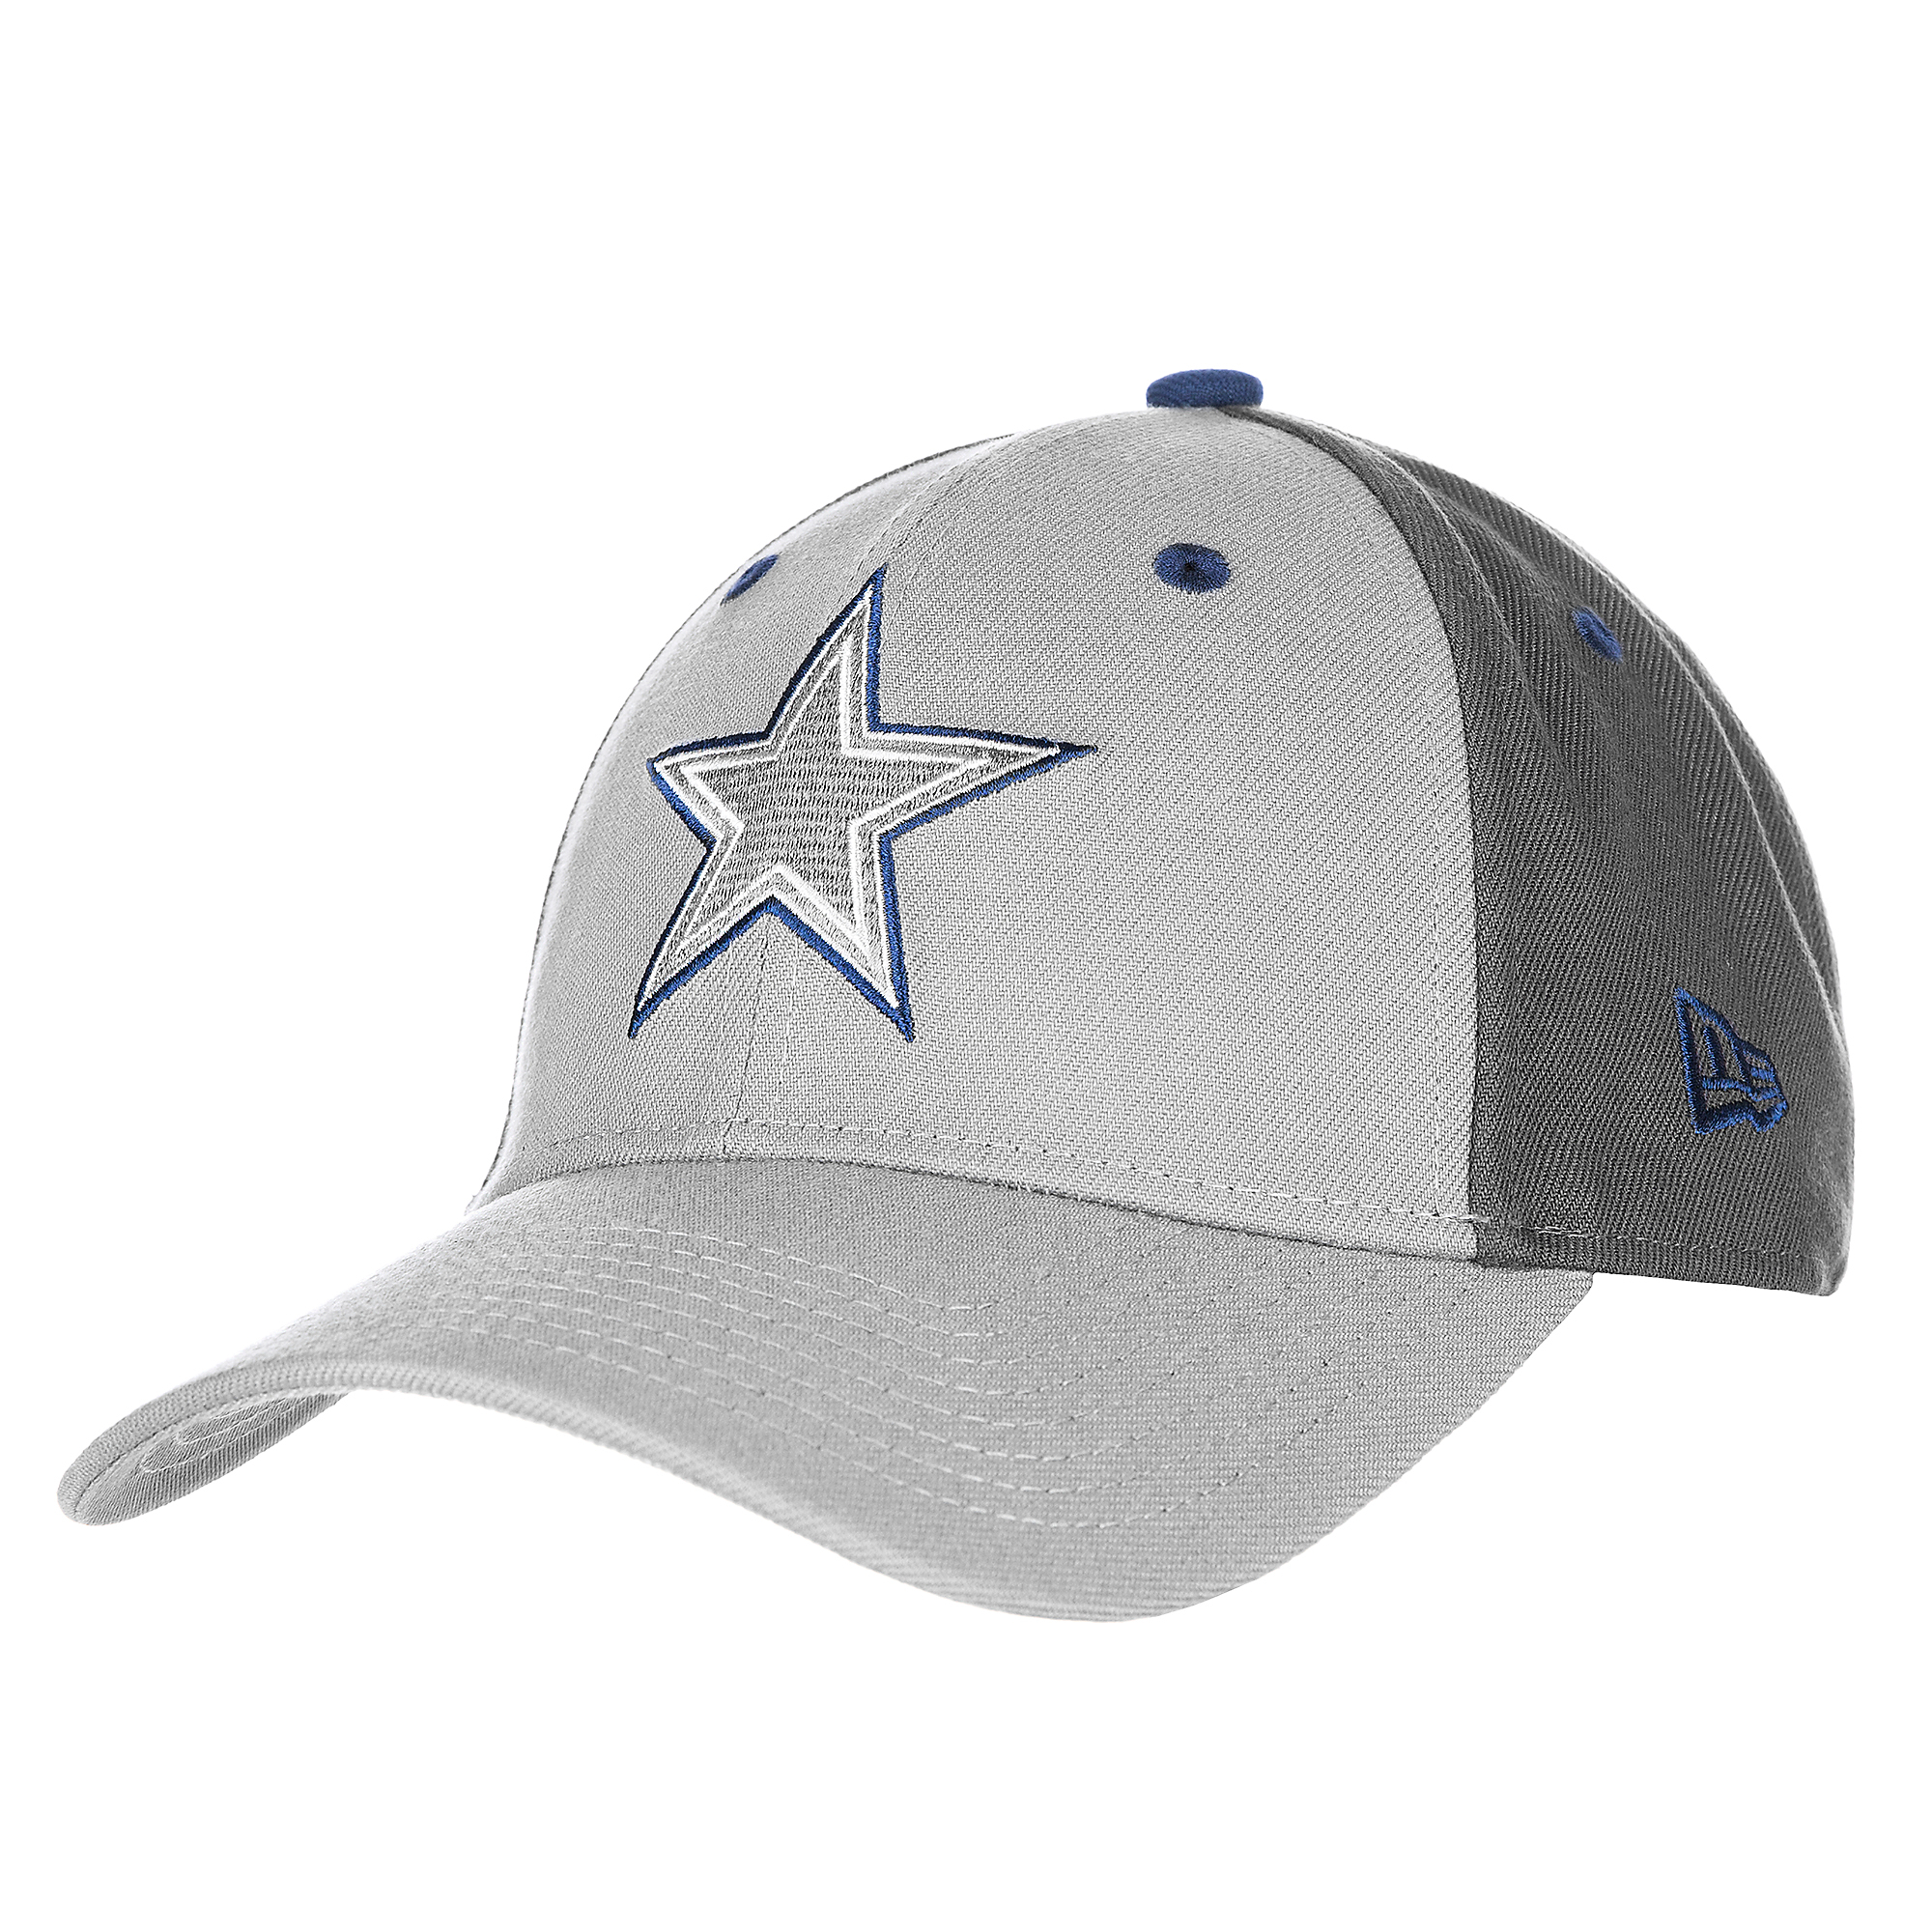 1a2df1b32 Dallas Cowboys New Era The League Grey Pop 9Forty Cap